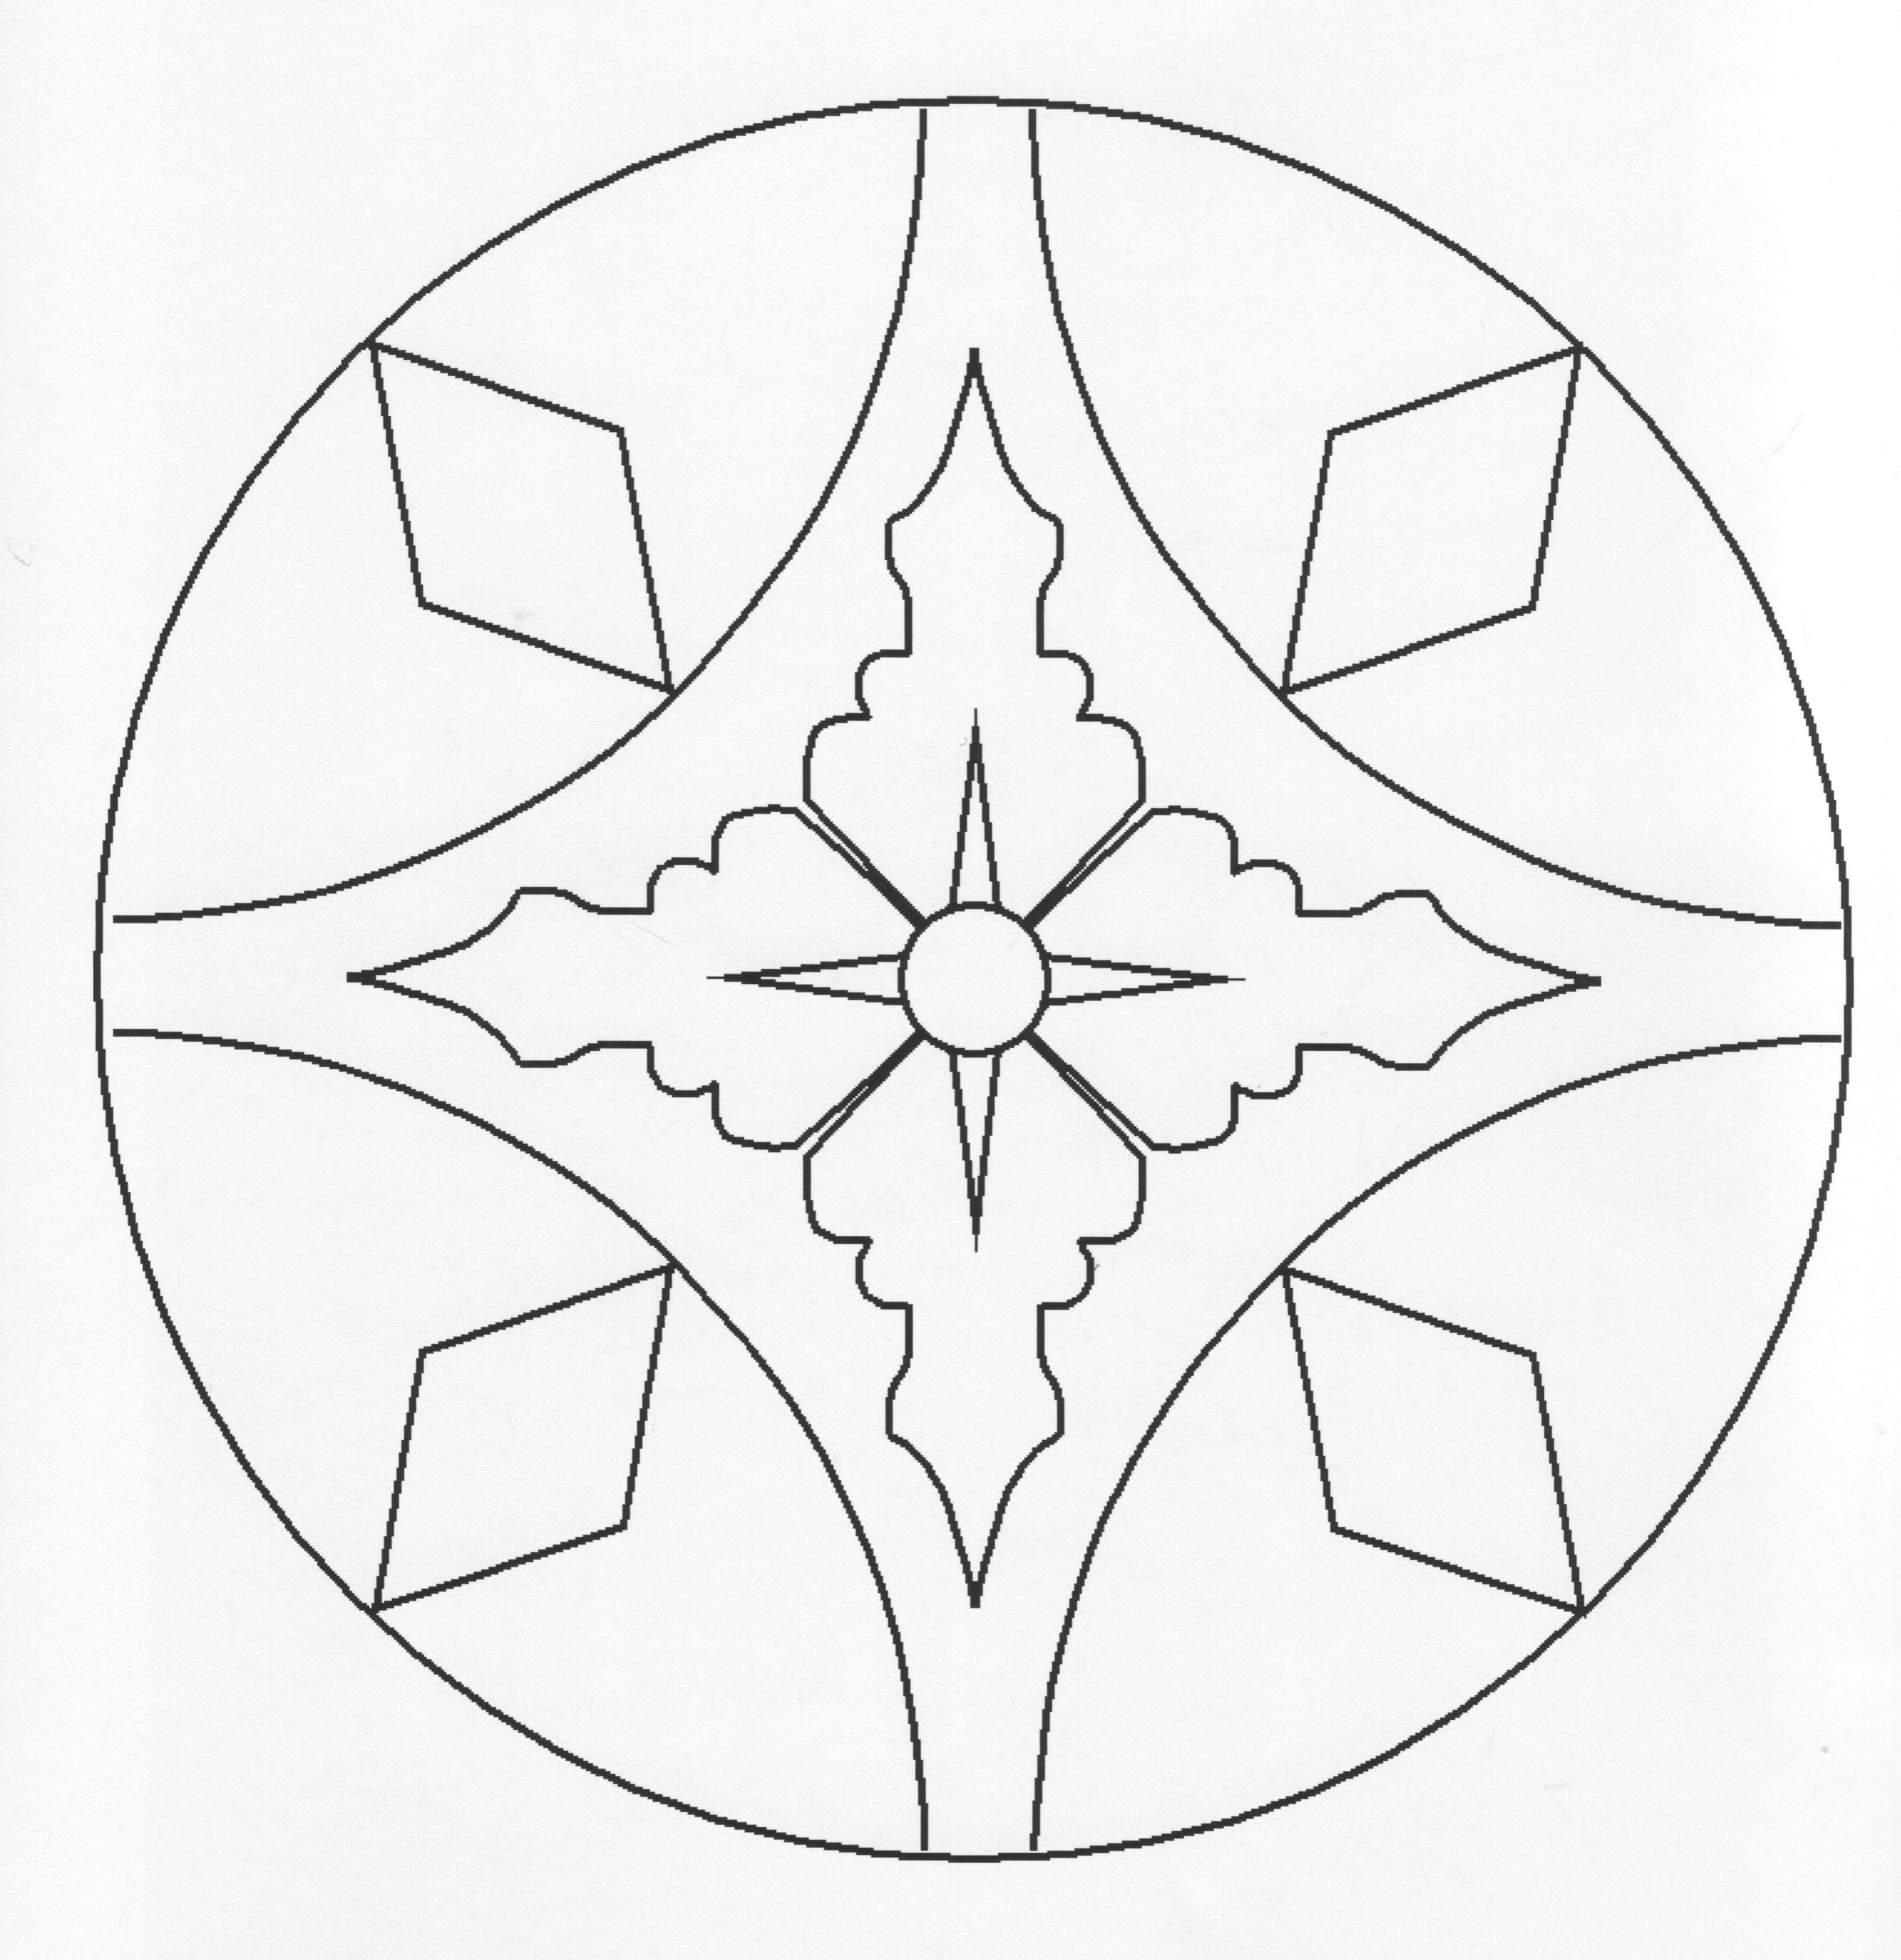 pattern coloring pages for kids free printable geometric coloring pages for kids kids coloring for pages pattern